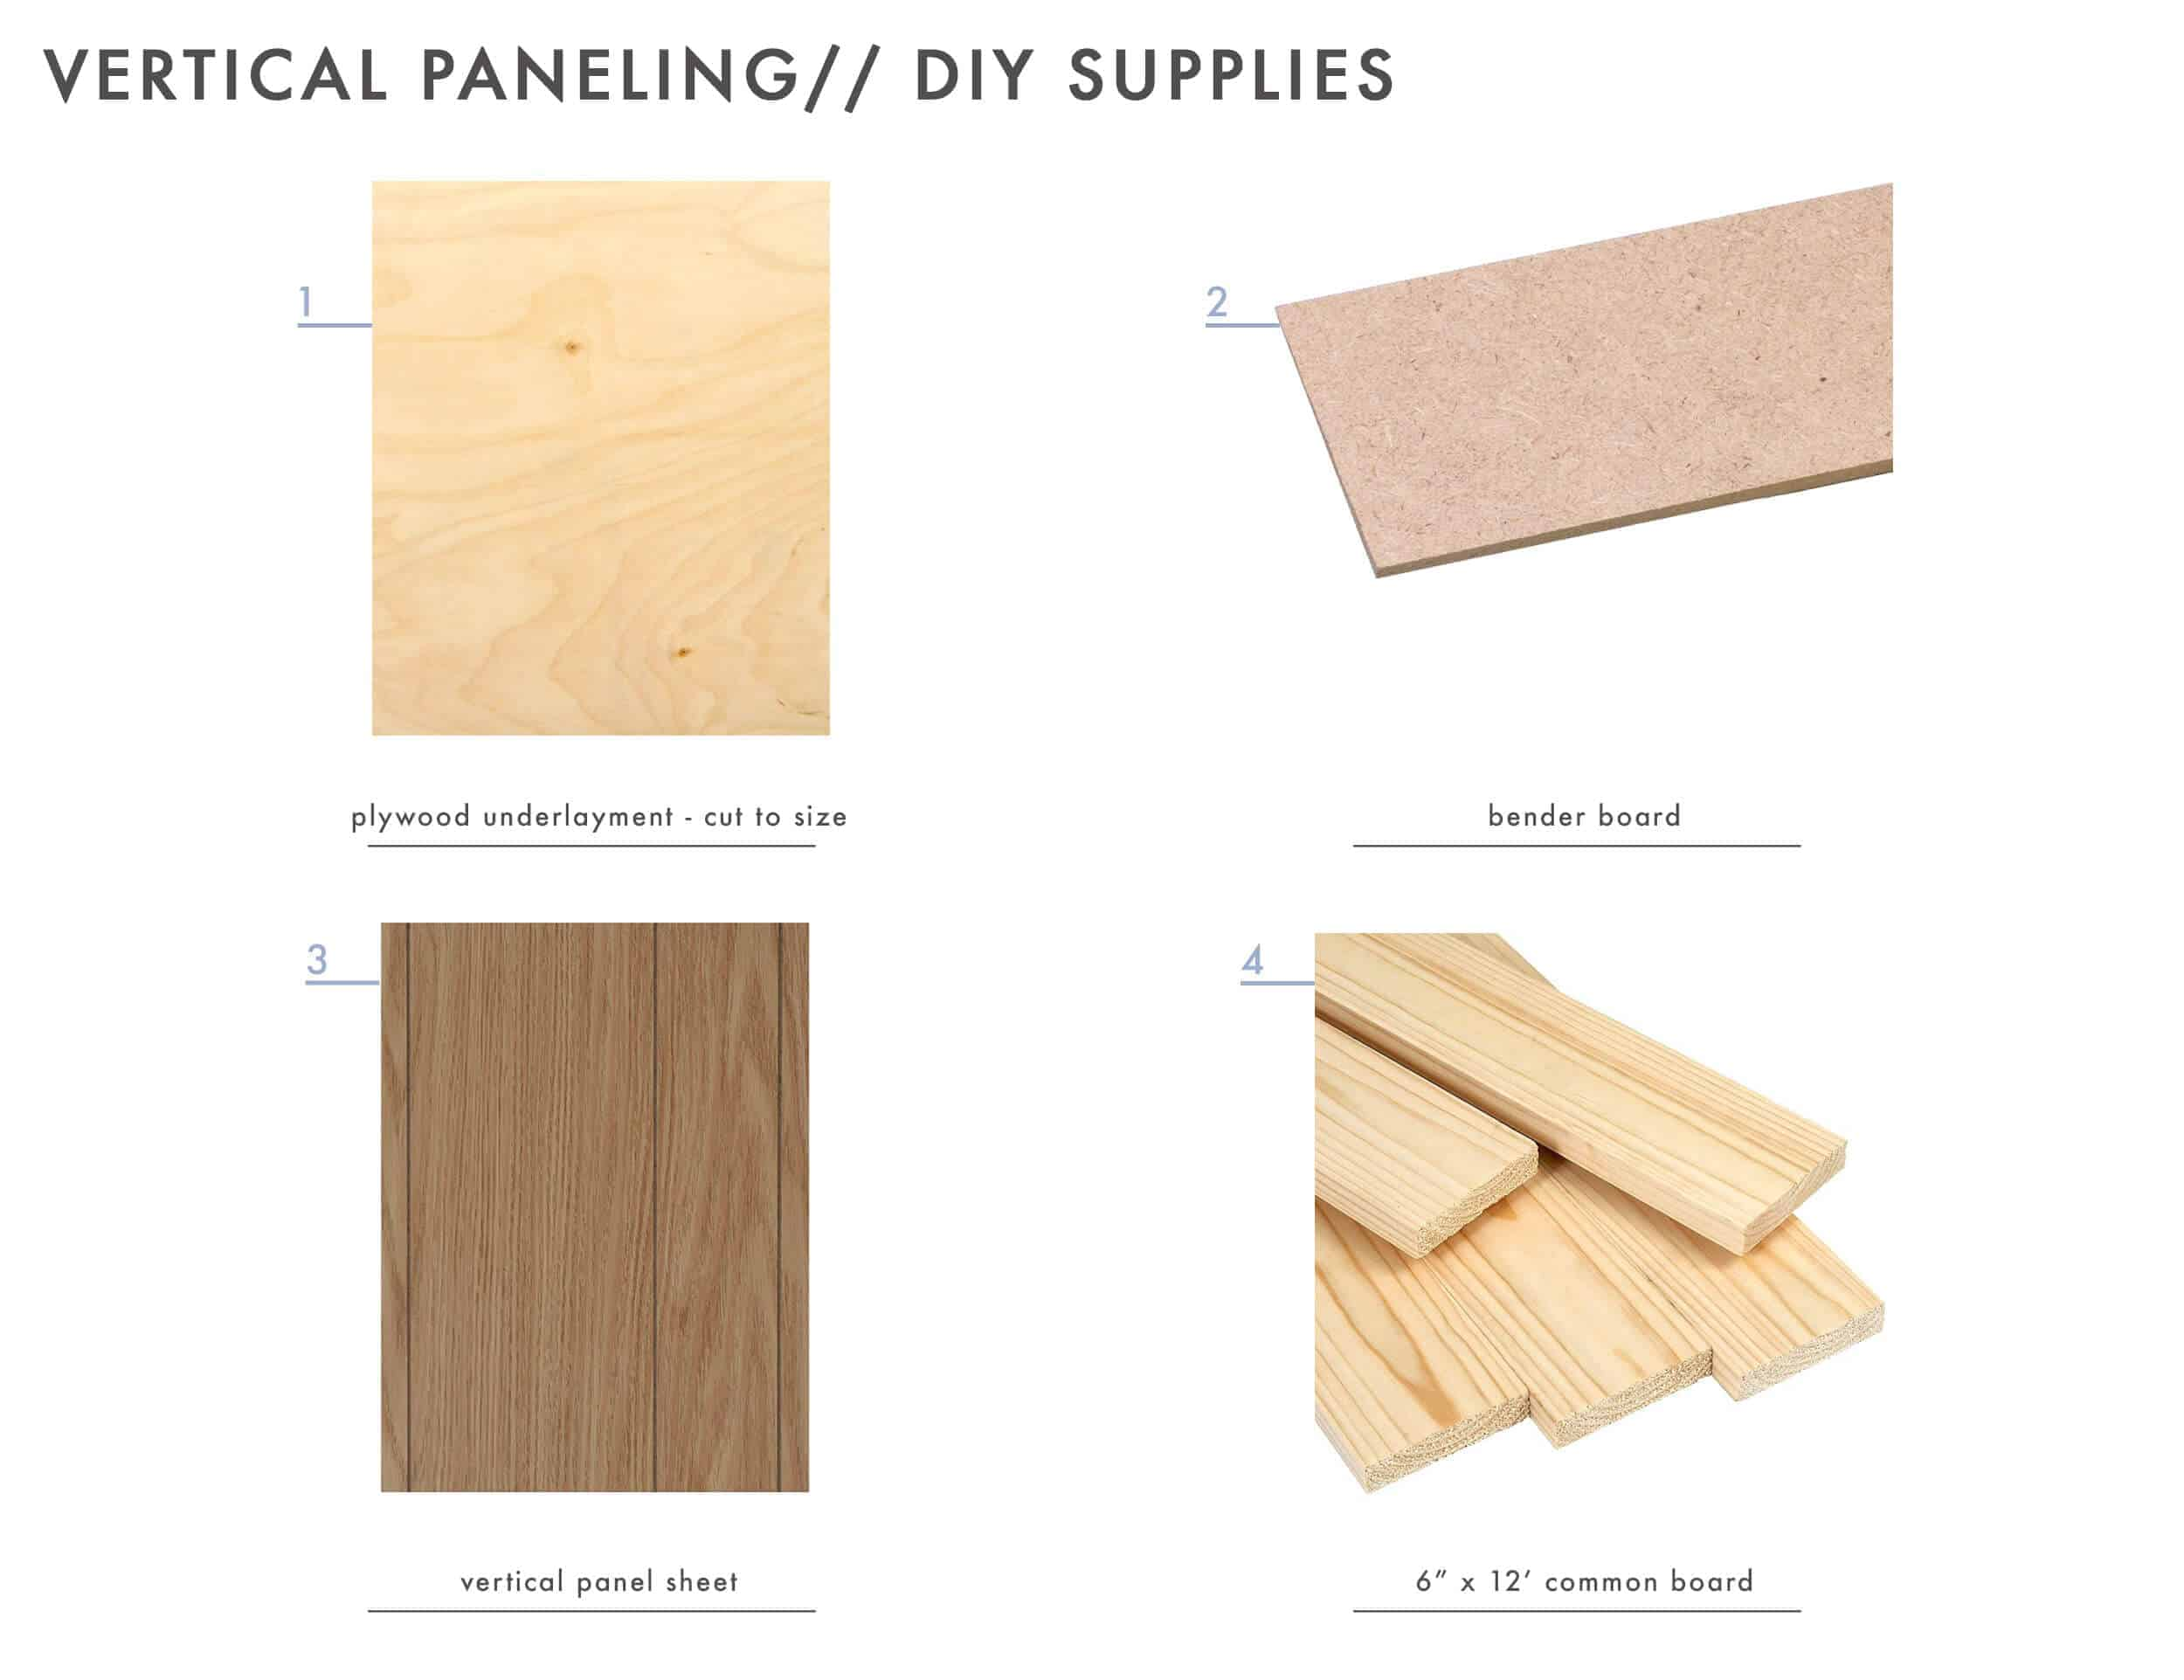 How To Add Character And Charm To Boring Architecture And Houses Vertical Paneling Diy Supplies 02